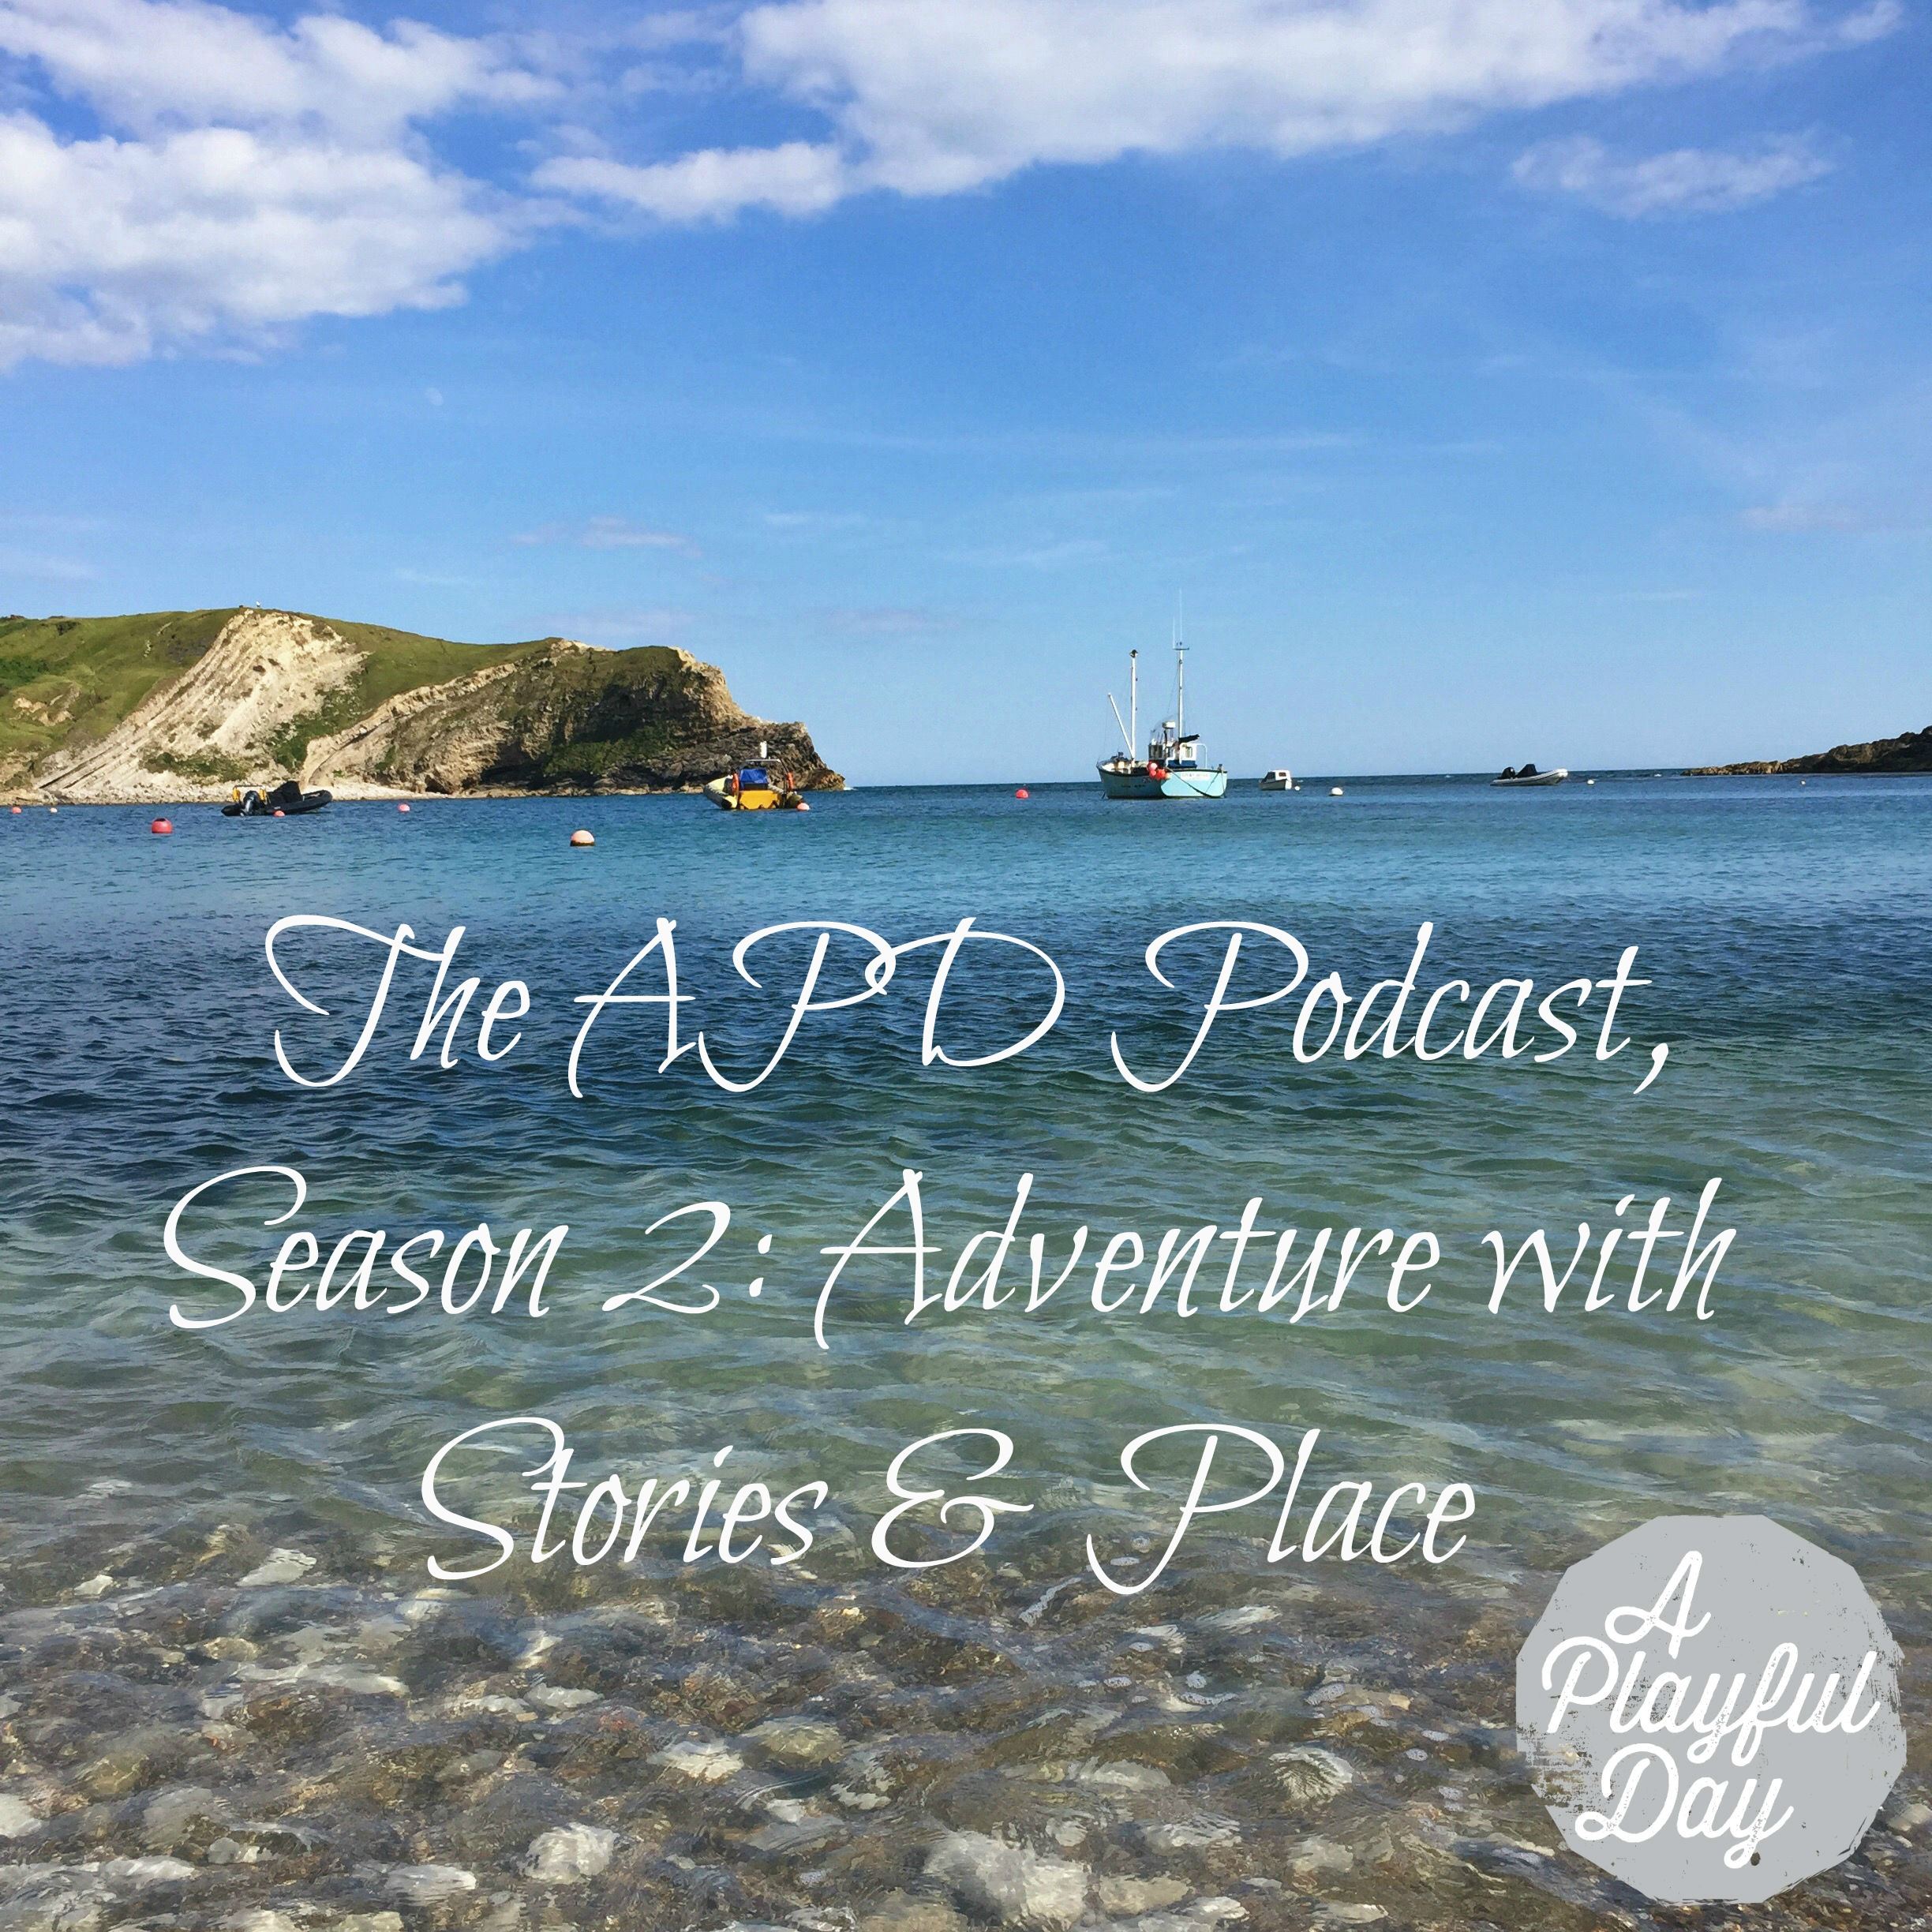 The APD Podcast, Season 2: Adventure with Stories & Place